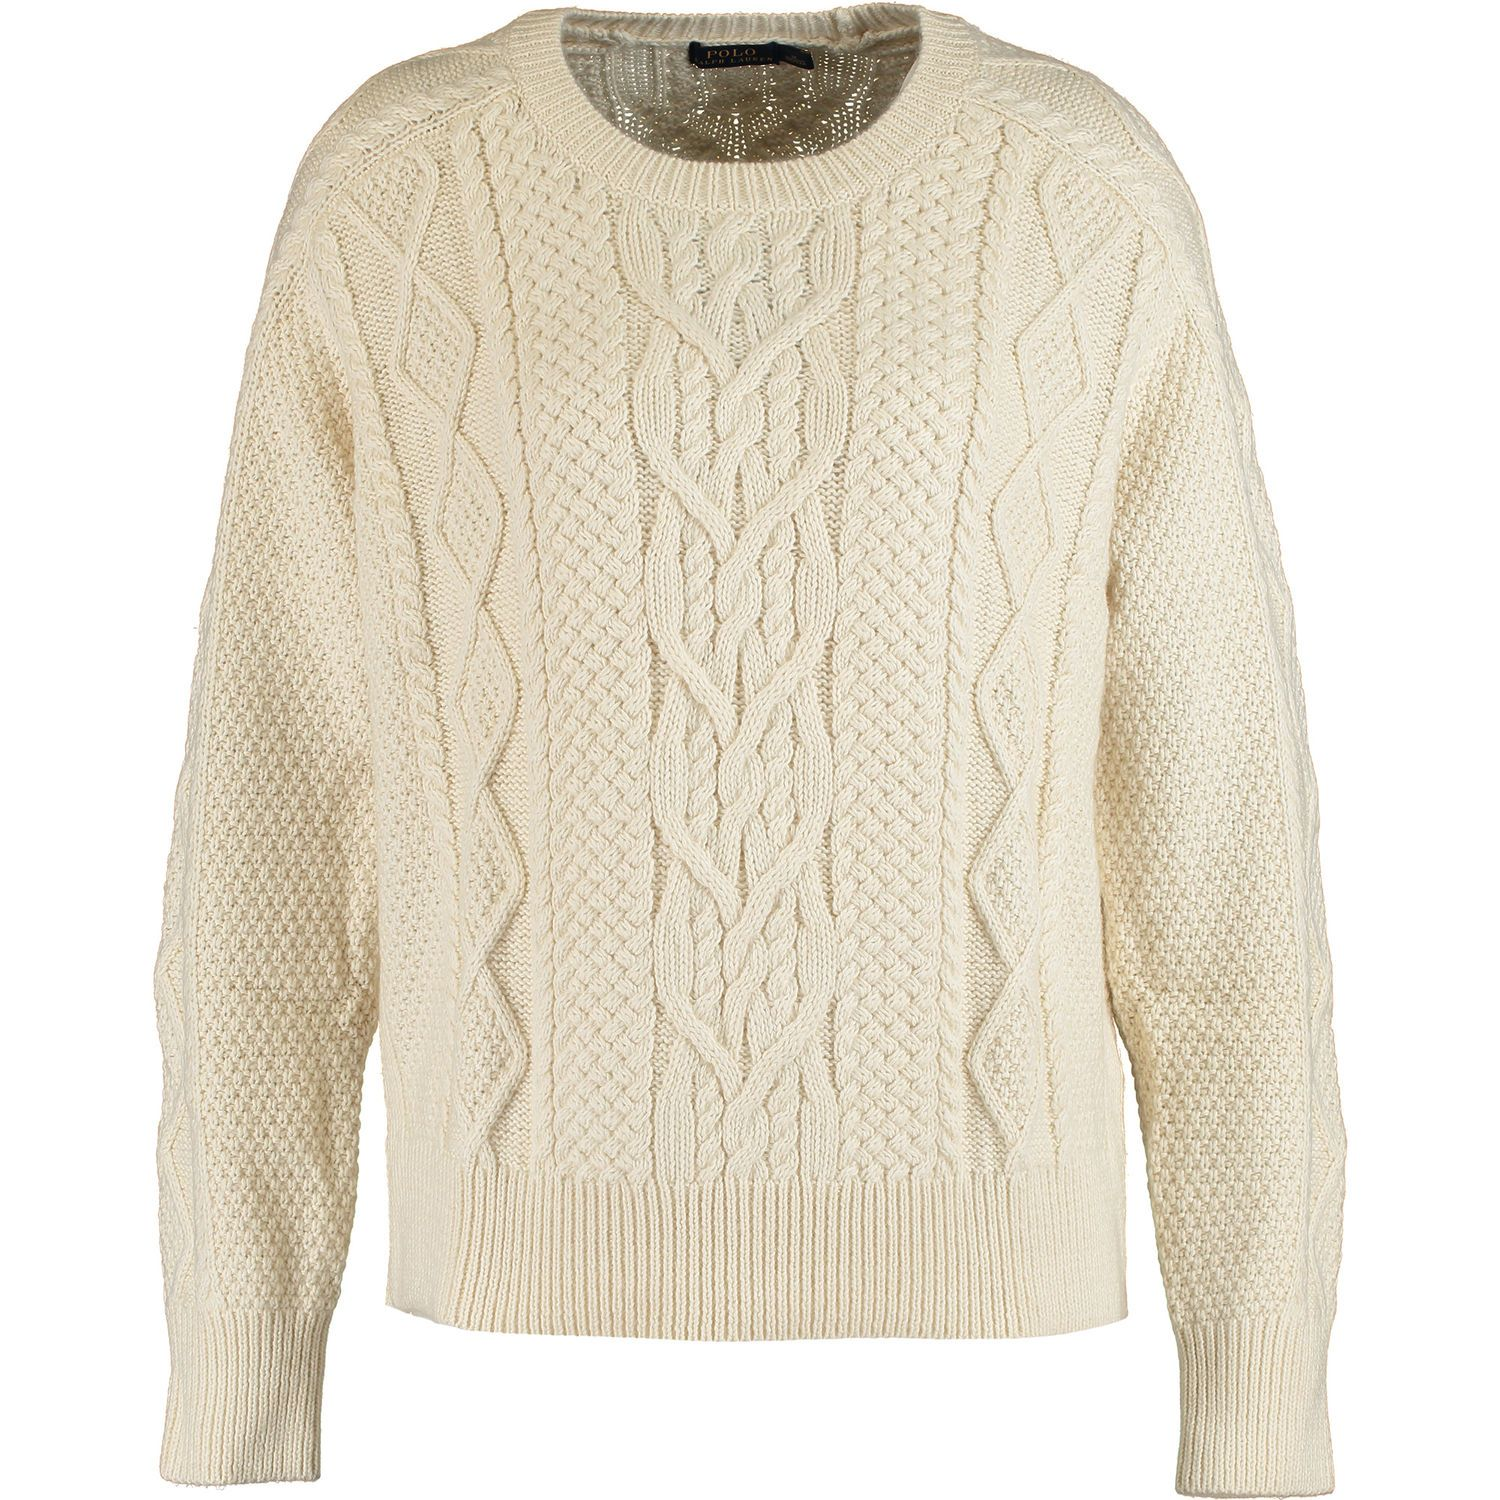 shop for best uk store clear and distinctive Cream Knitted Jumper - Knitwear - Clothing - Women - TK Maxx ...